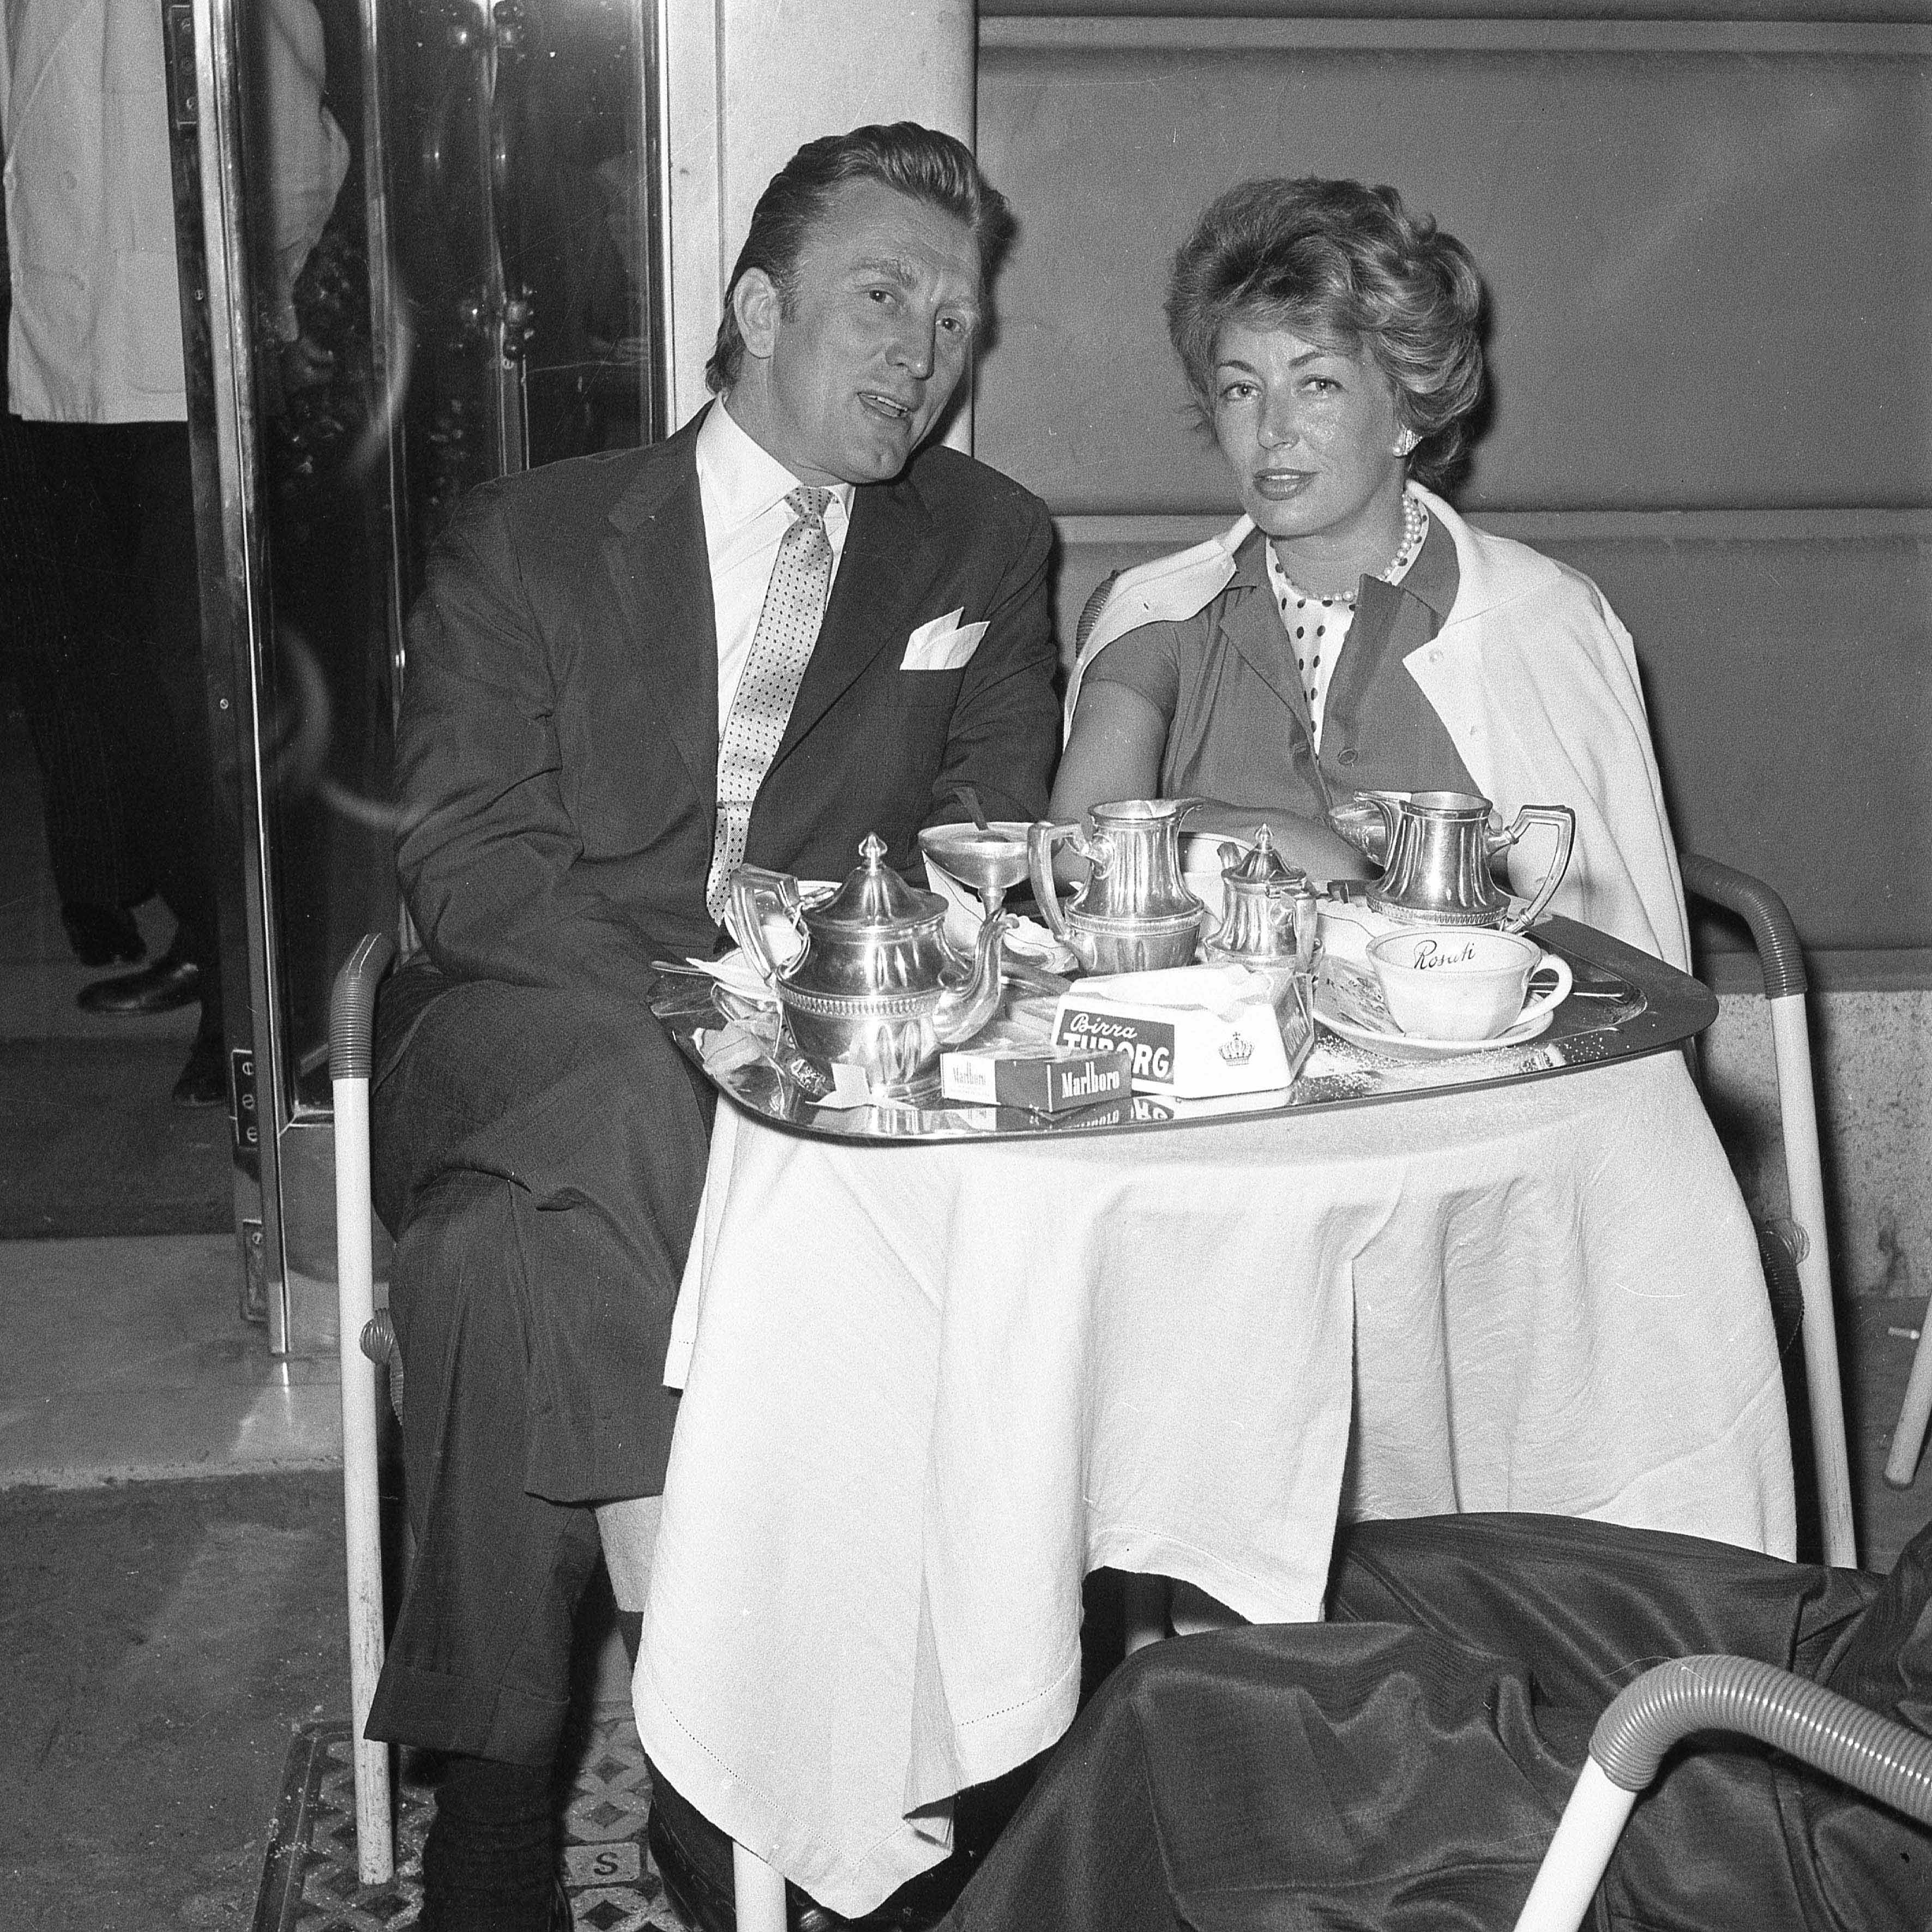 Anne Douglas and her husband Kirk Douglas at the coffee bar in Via Veneto, Rome 1958 | Photo: Getty Images